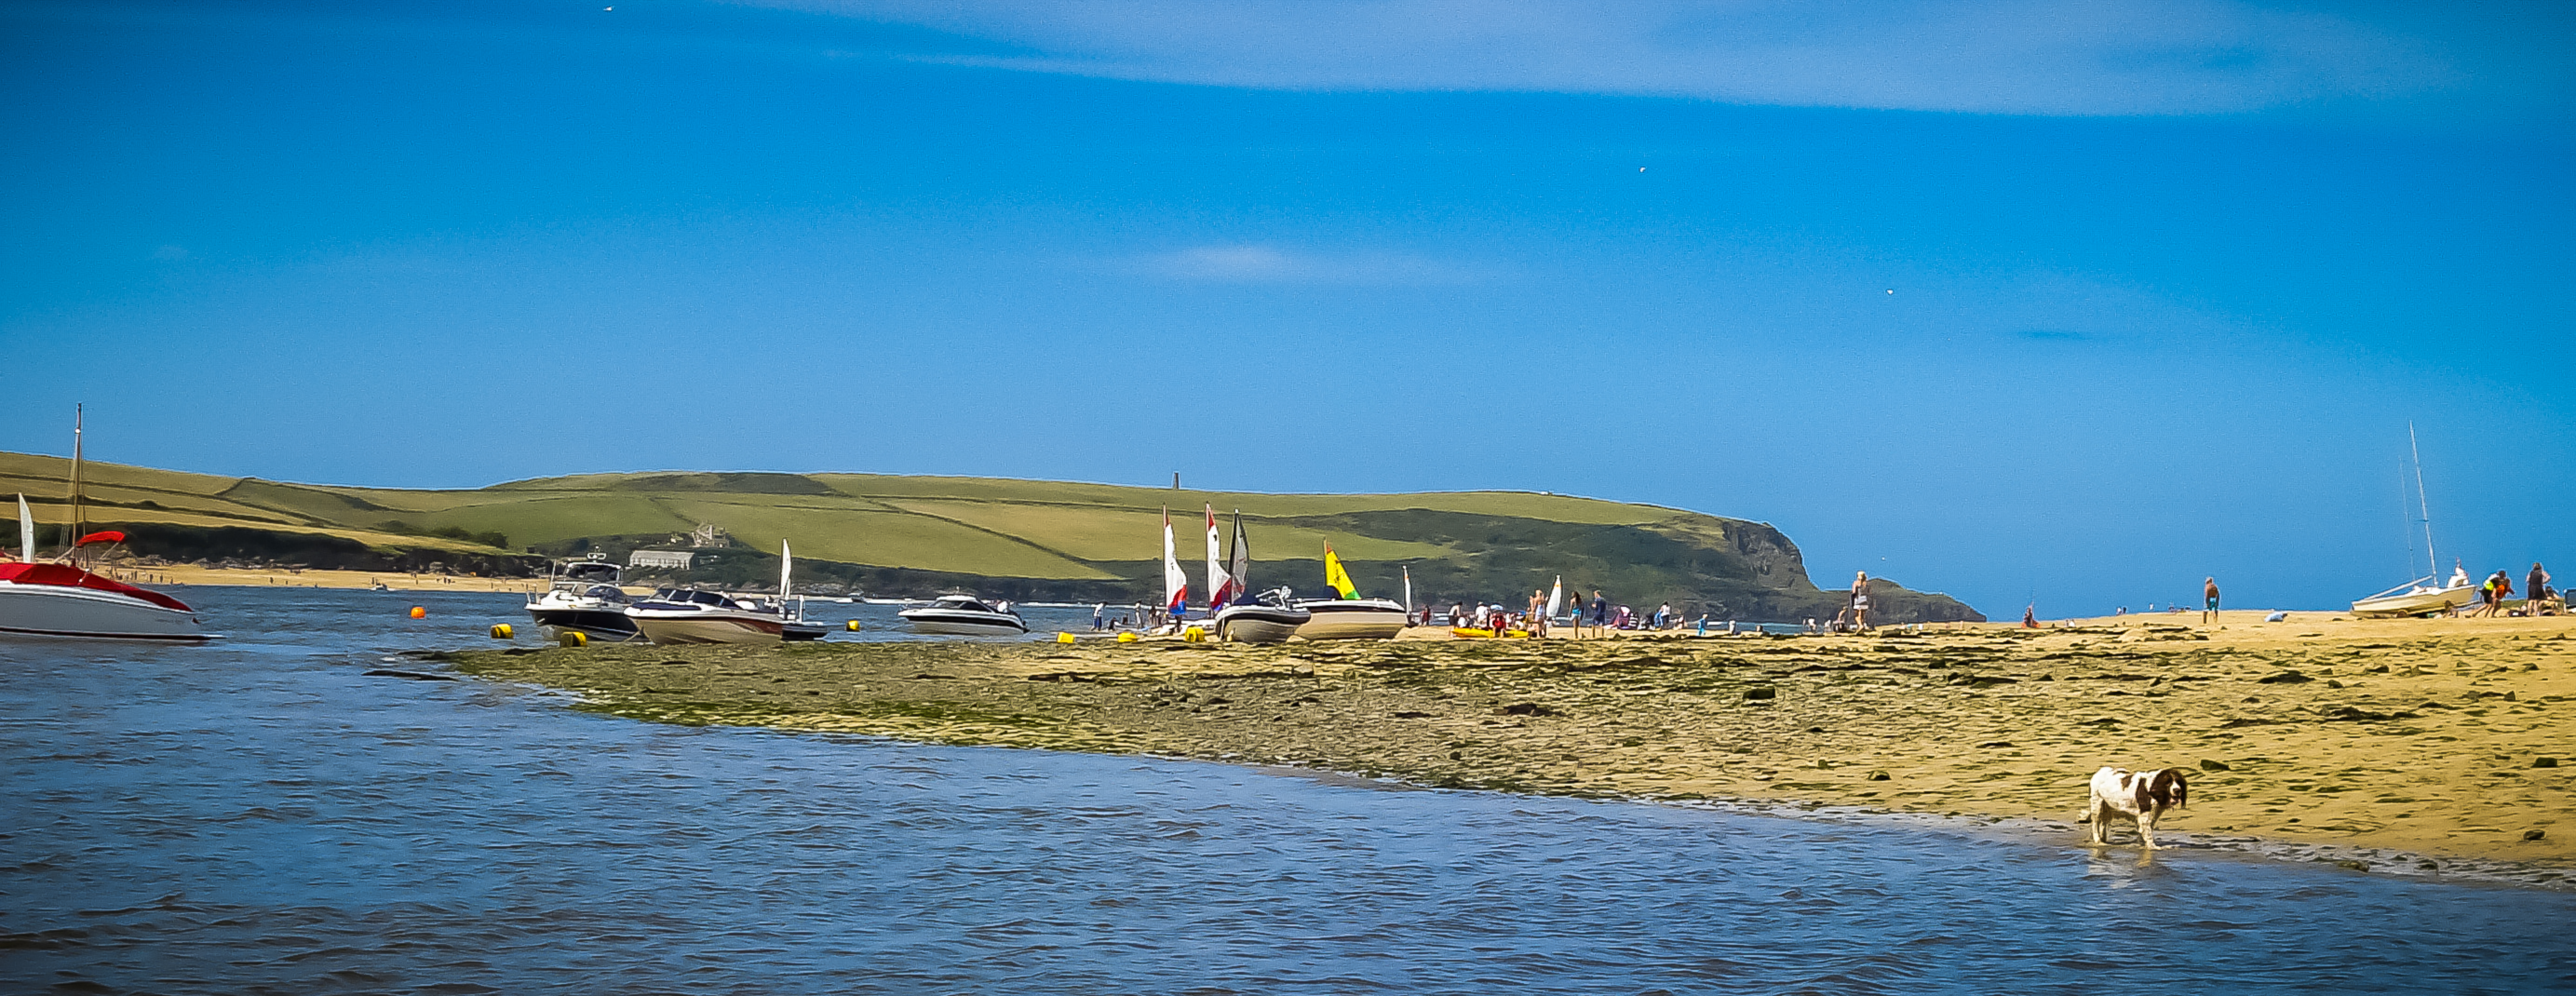 Camel Estuary Padstow Cornwall